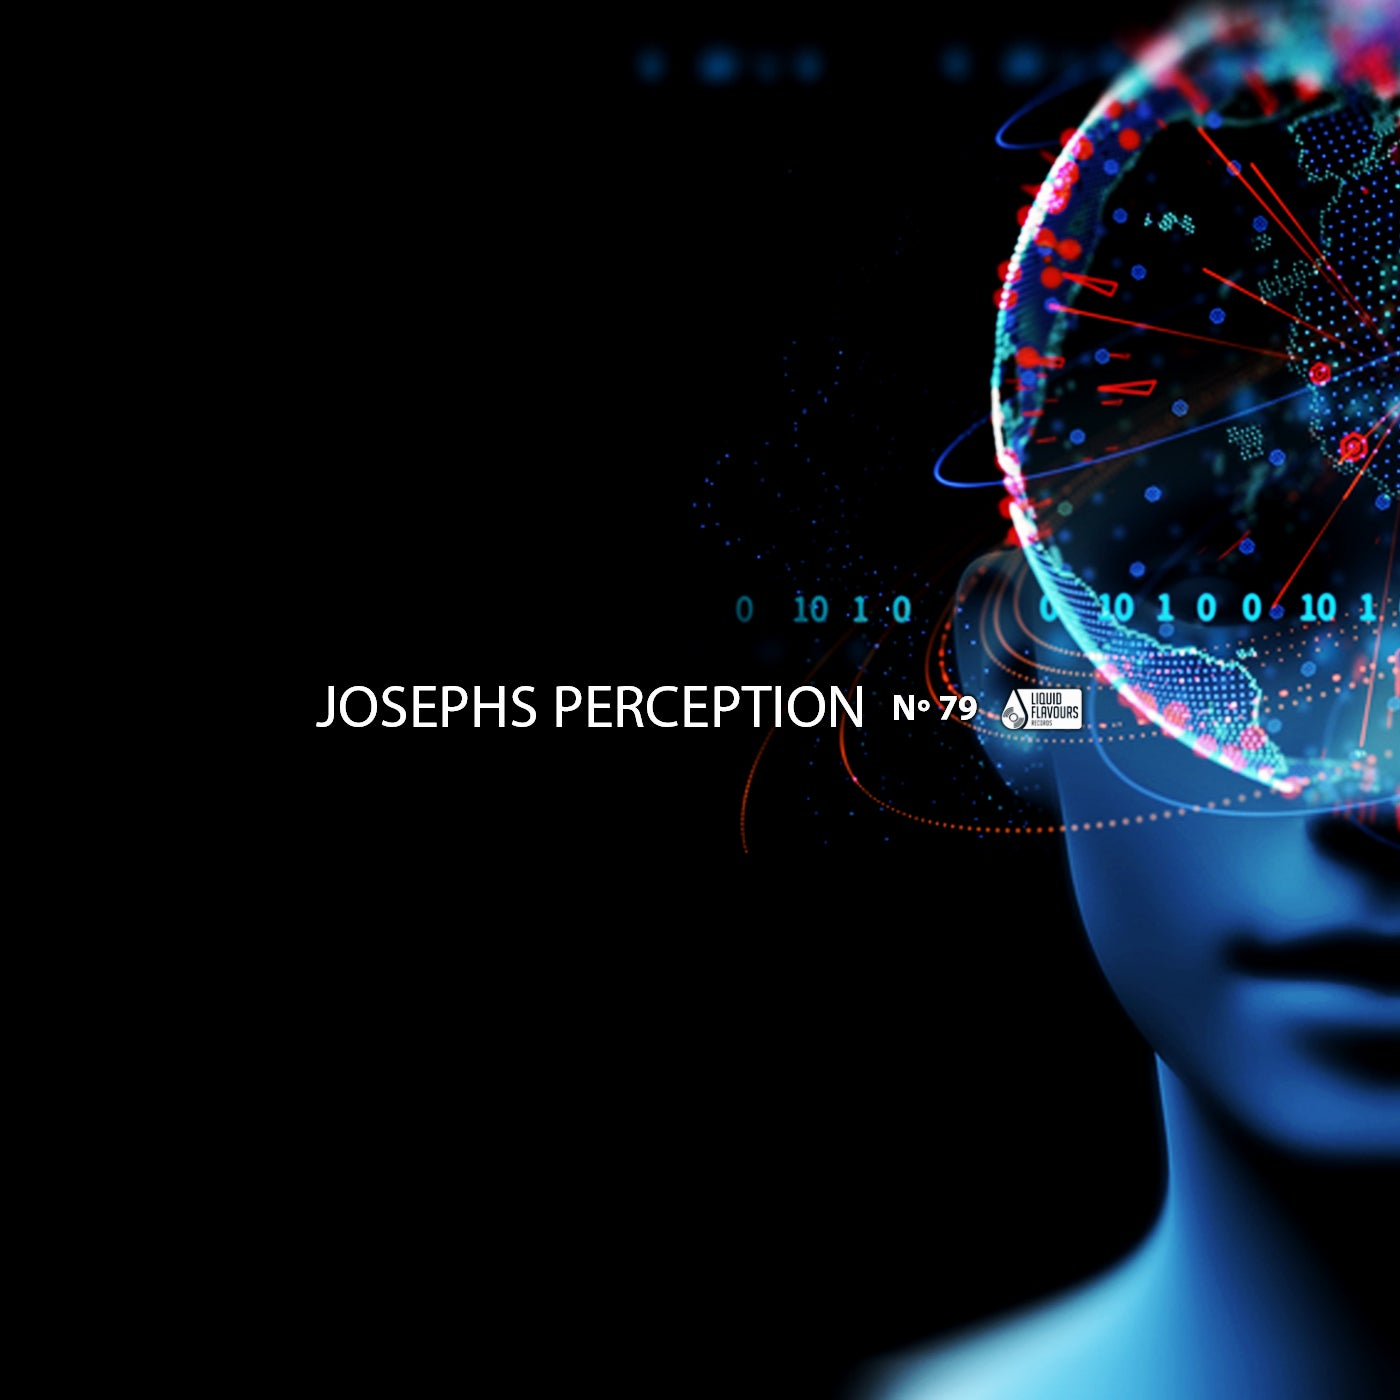 Josephs Perception - No 79 (LFR240)